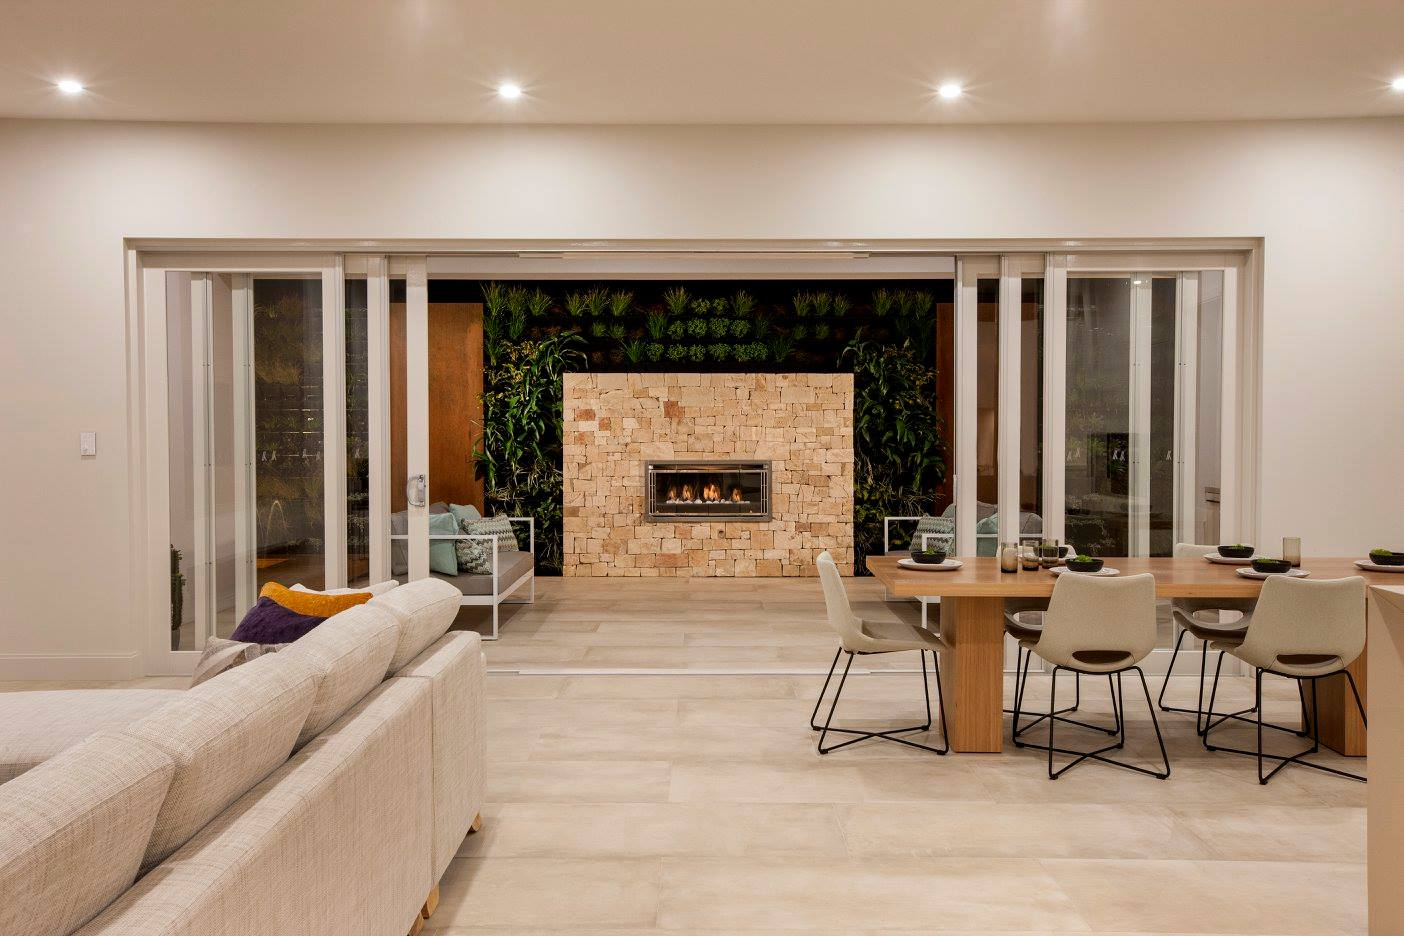 Project by Lares Homes featuring our Acustico Collection.